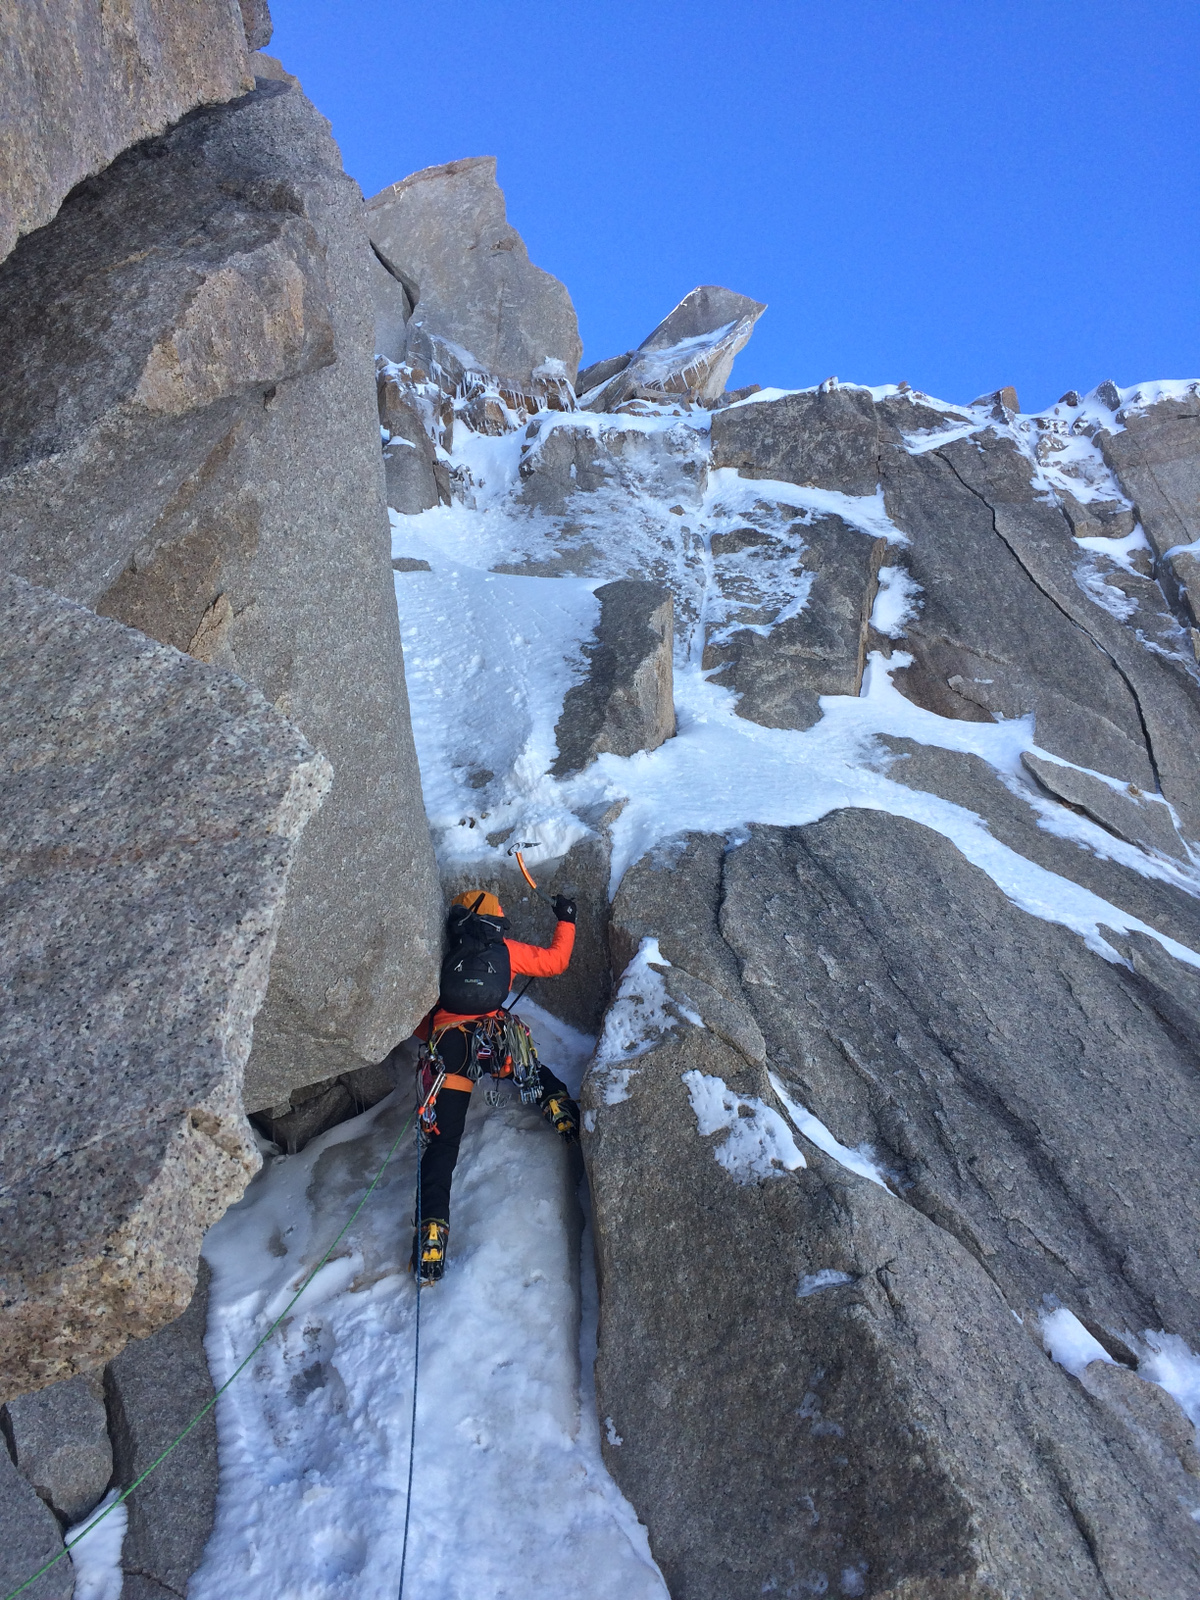 mountaineer in a climbing harness uses ice axe to ascent snow and rock in Patagonia